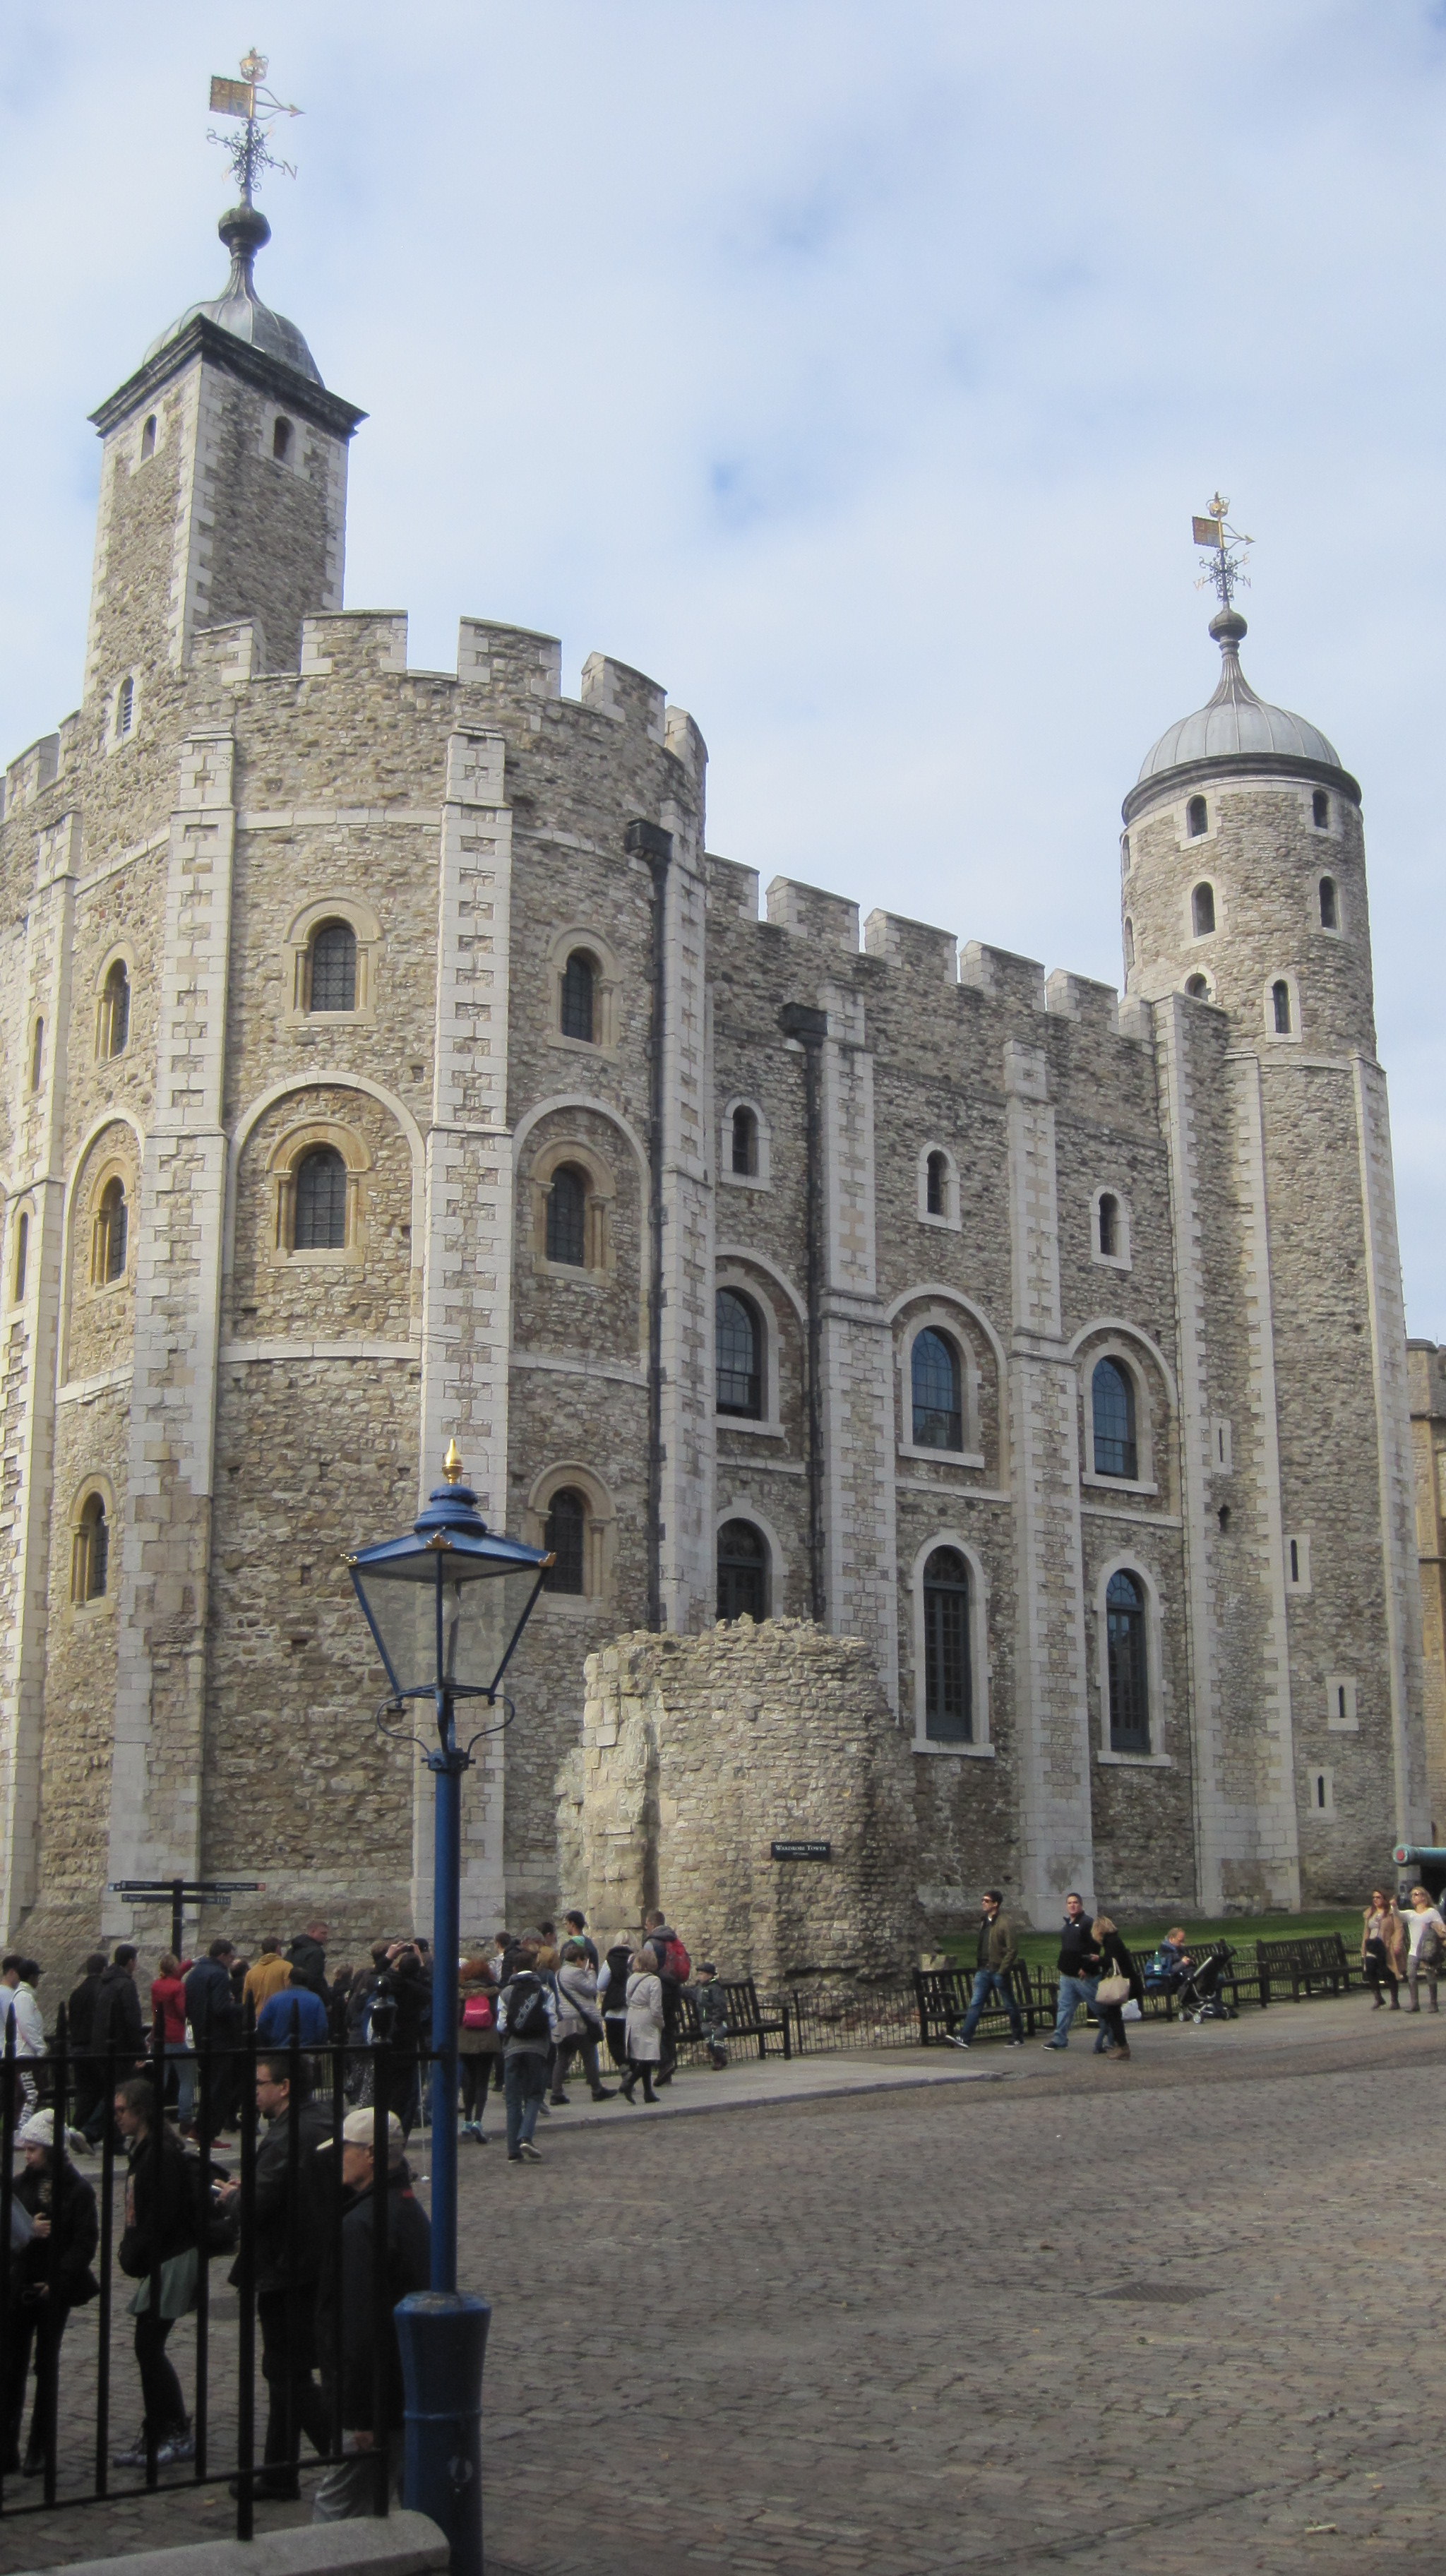 Tower of London - photo by Juliamaud